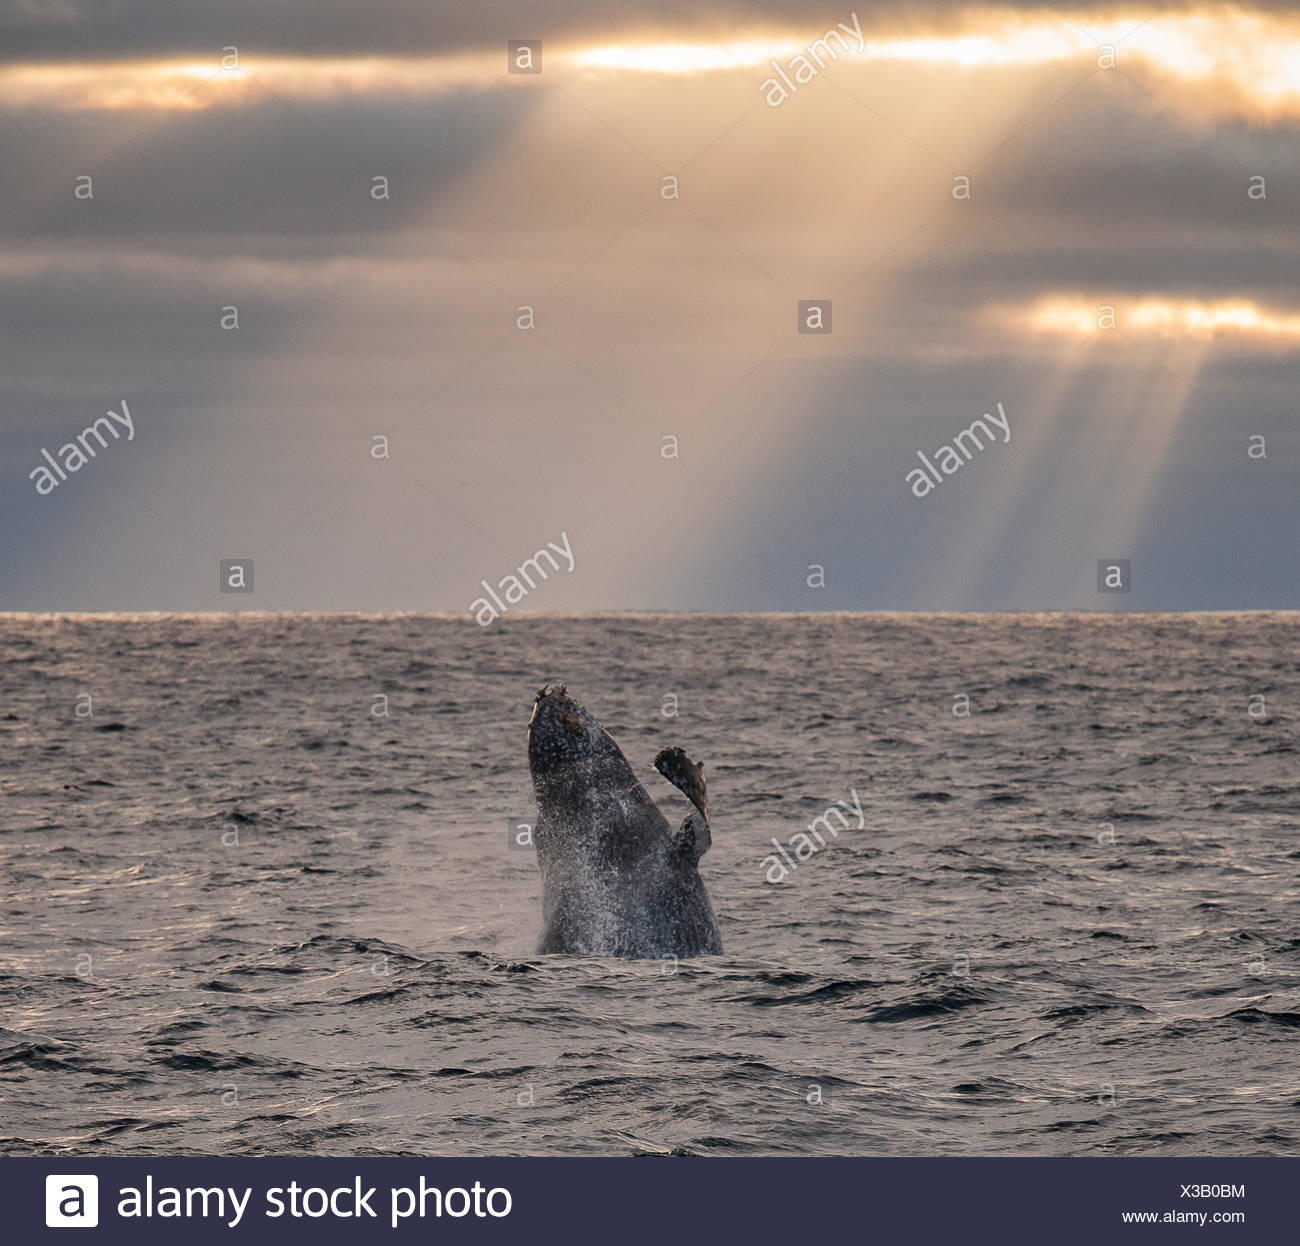 A humpback whale, Megaptera novaeangliae, breaching under rays of sunlight. - Stock Image